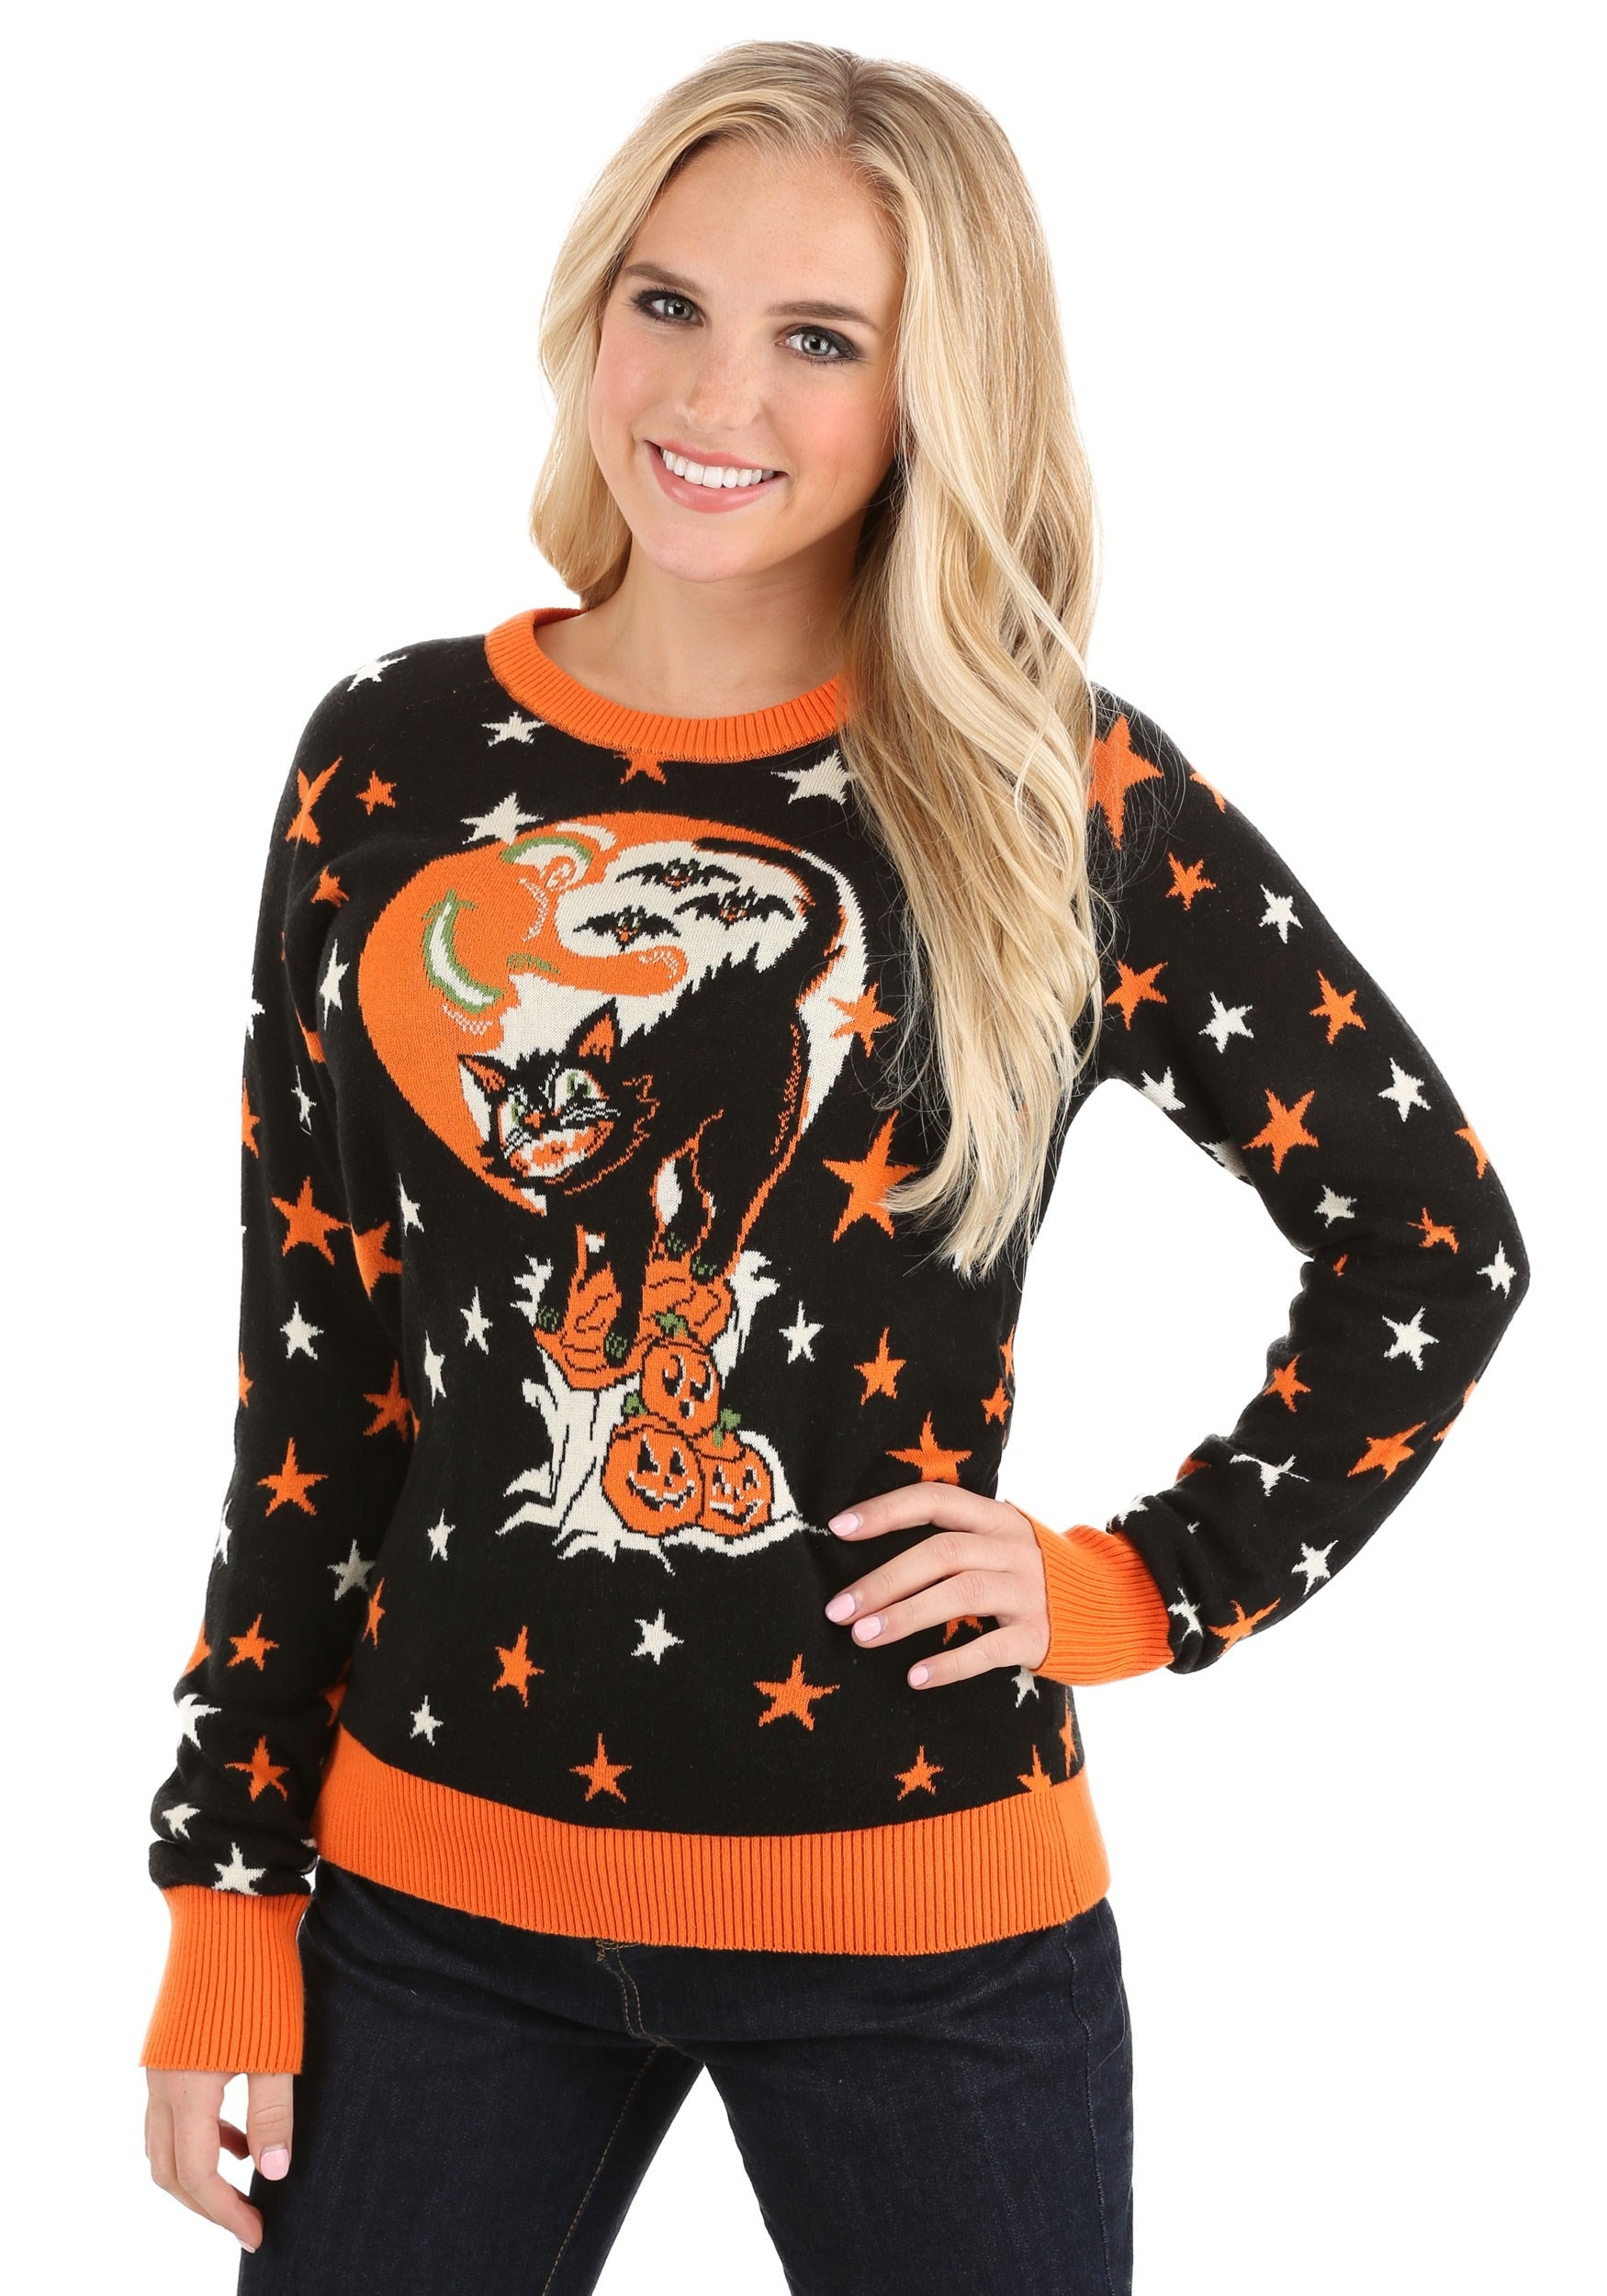 Vintage Halloween Cat Ugly Halloween Sweater for Adults